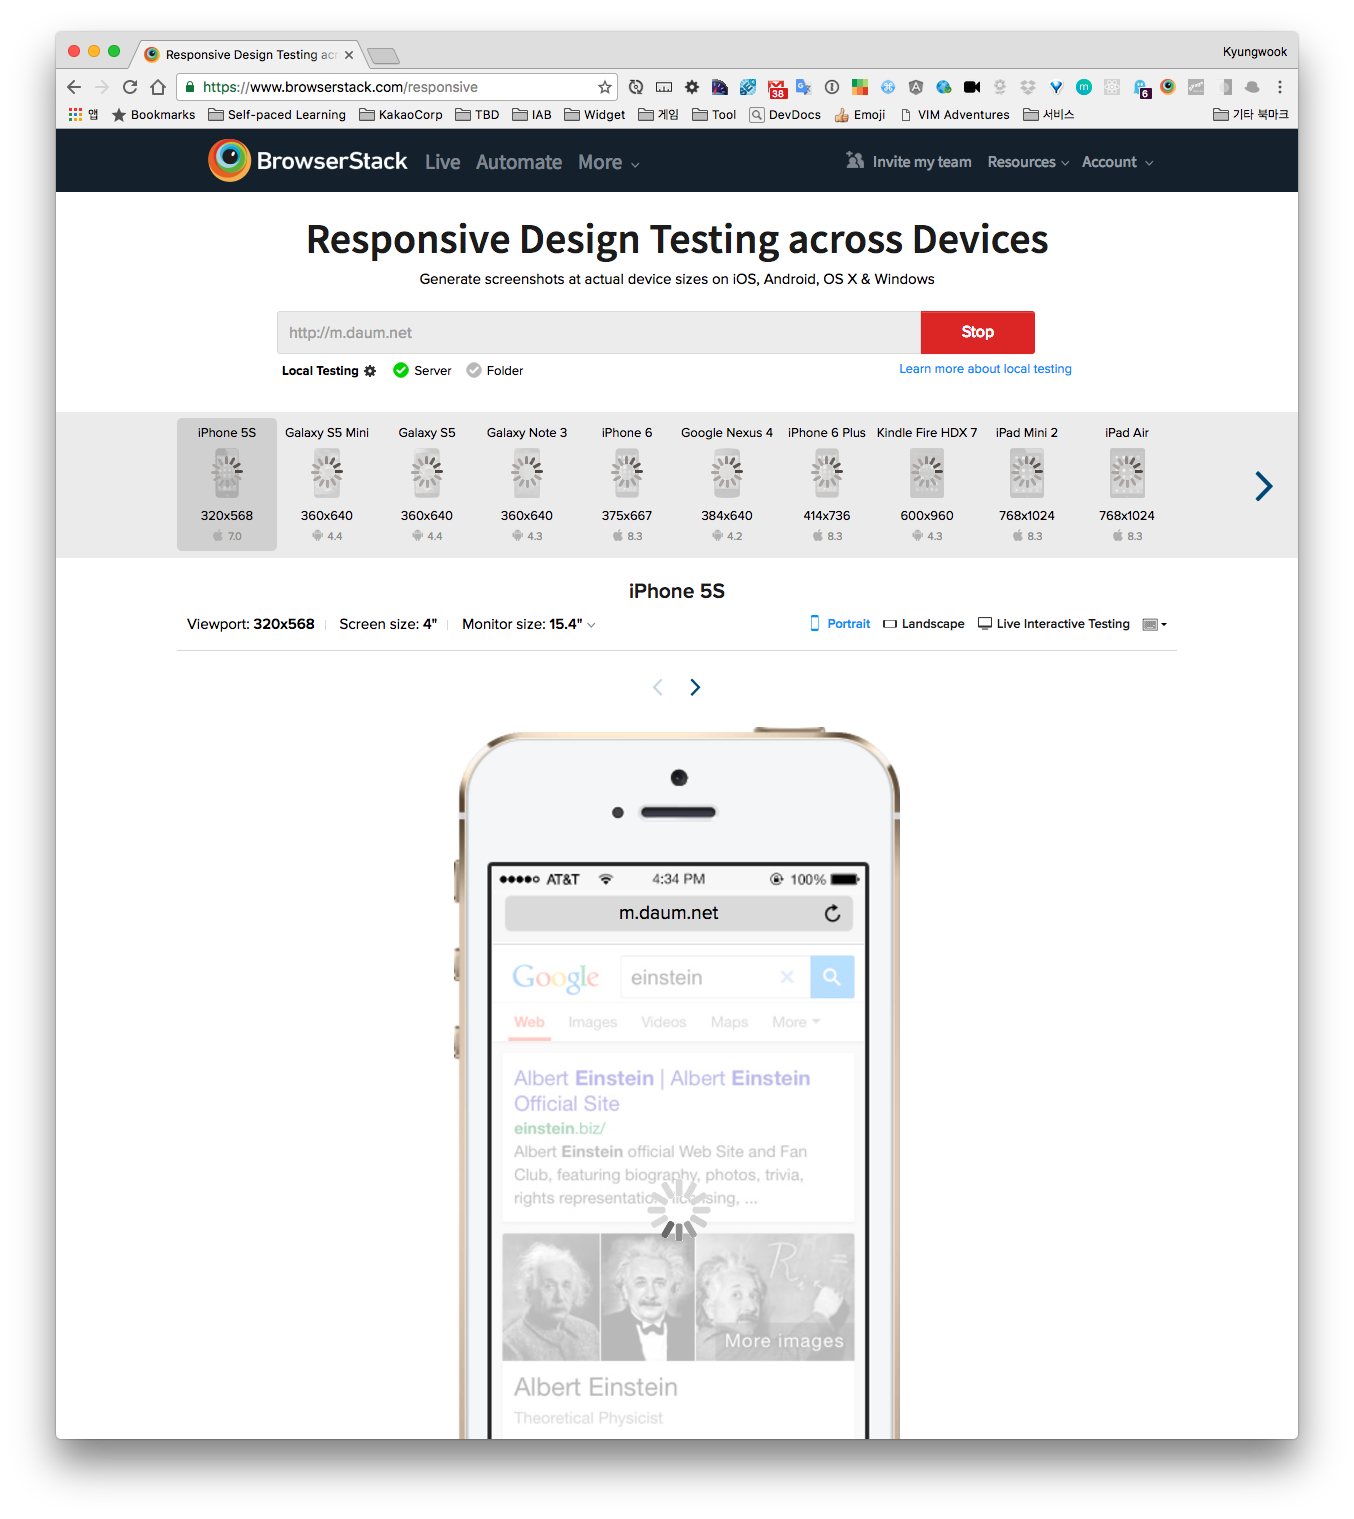 browserstack-responsive